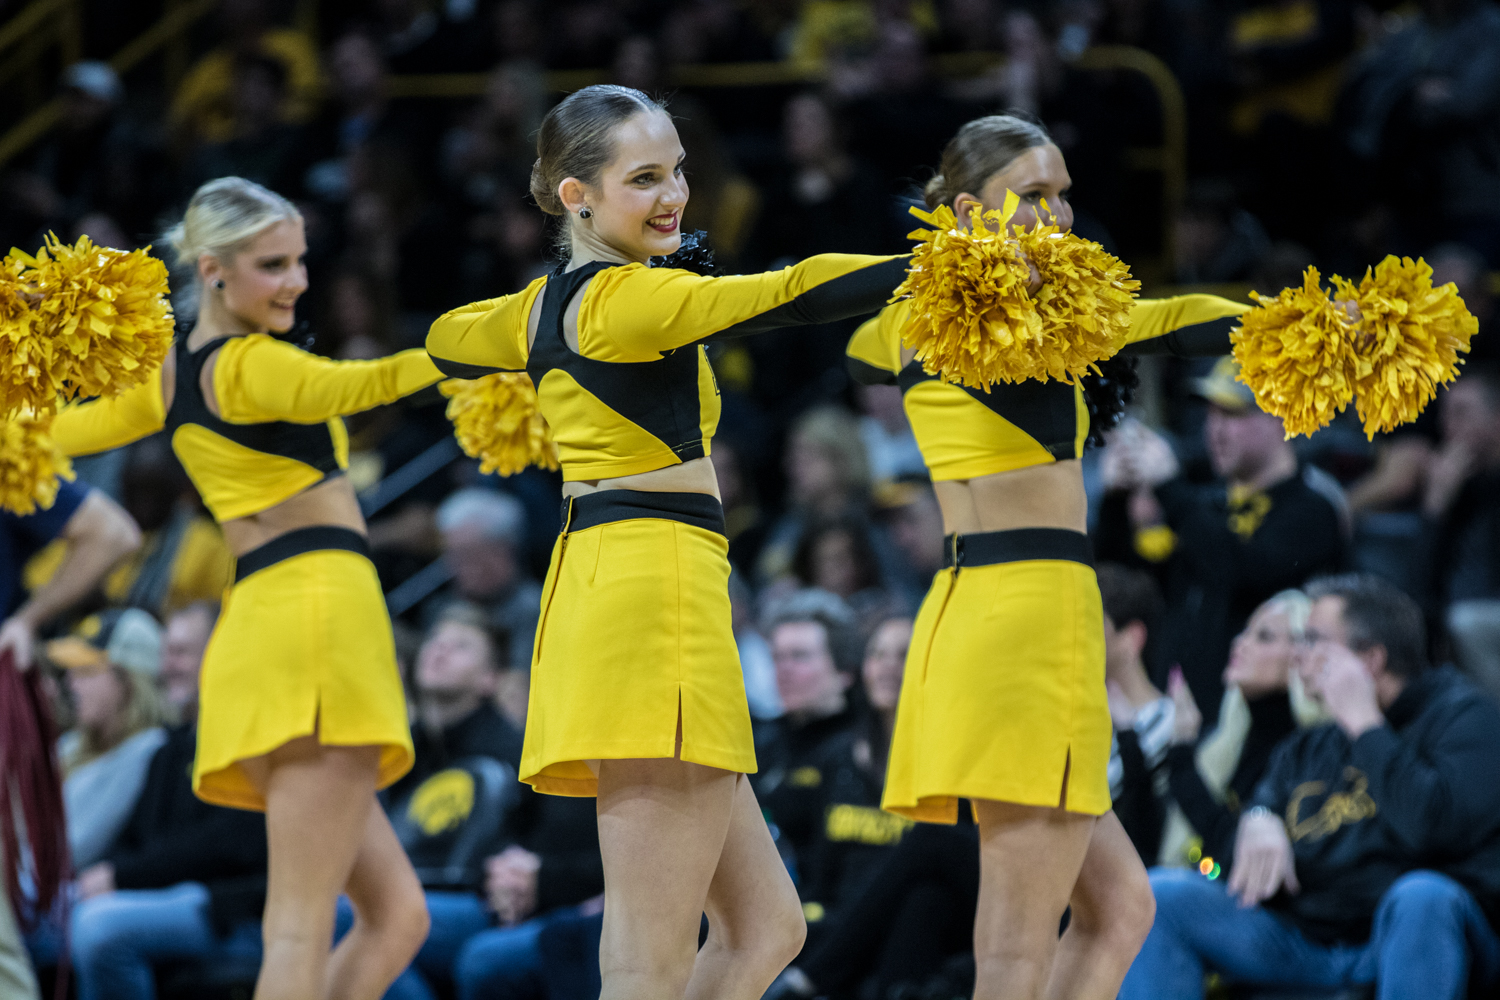 Iowa+cheerleaders+perform+during+a+timeout+during+a+men%27s+basketball+matchup+between+Ohio+State+and+Iowa+at+Carver-Hawkeye+Arena+on+Saturday%2C+January+12%2C+2019.+The+Hawkeyes+defeated+the+Buckeyes%2C+72-62.